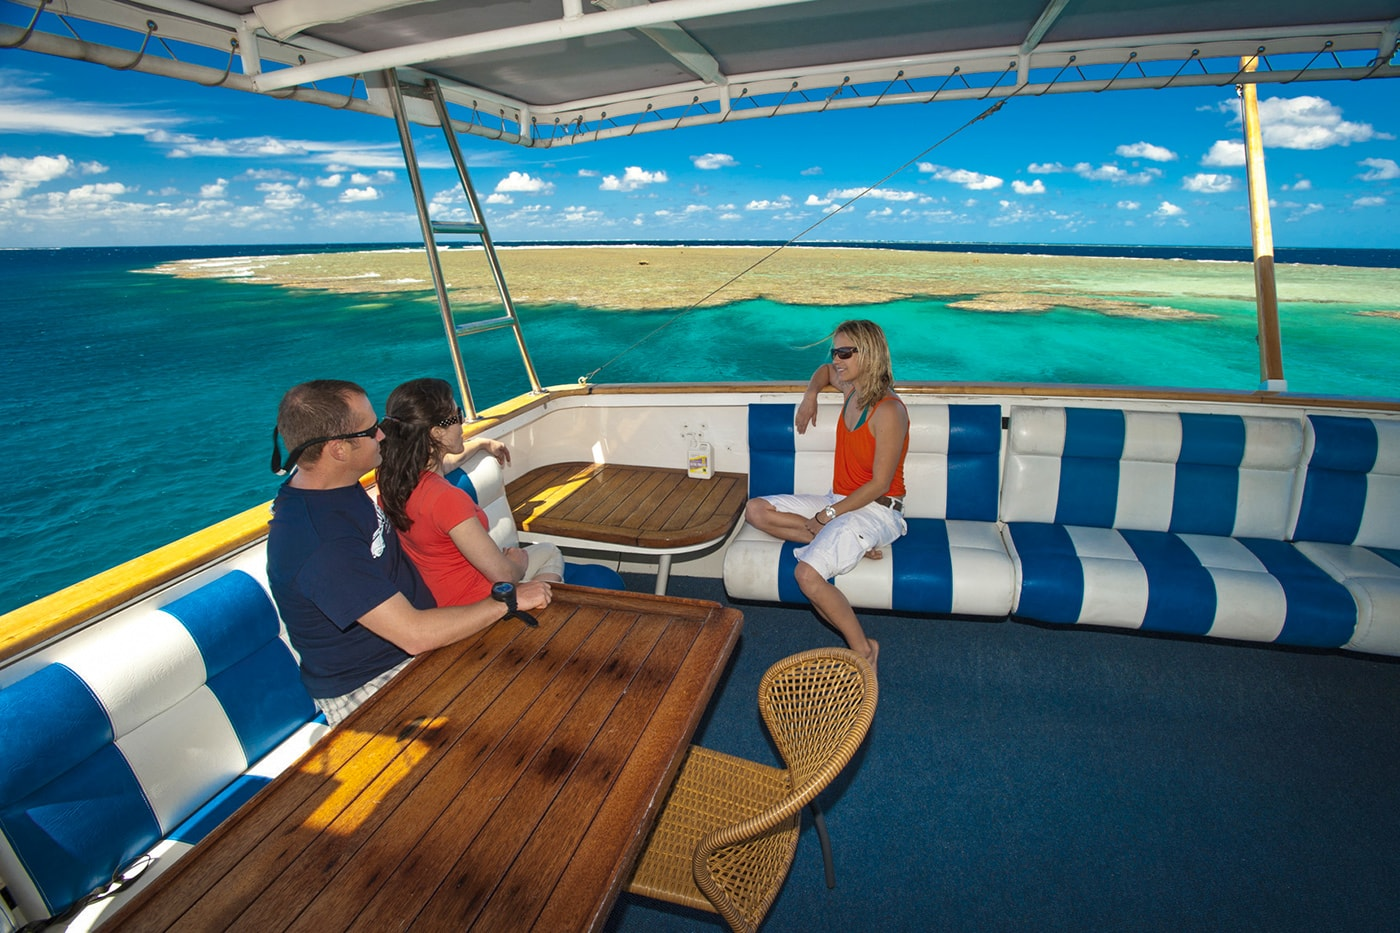 The Spirit of Freedom's top deck includes both open and shaded lounge areas, with great water views.